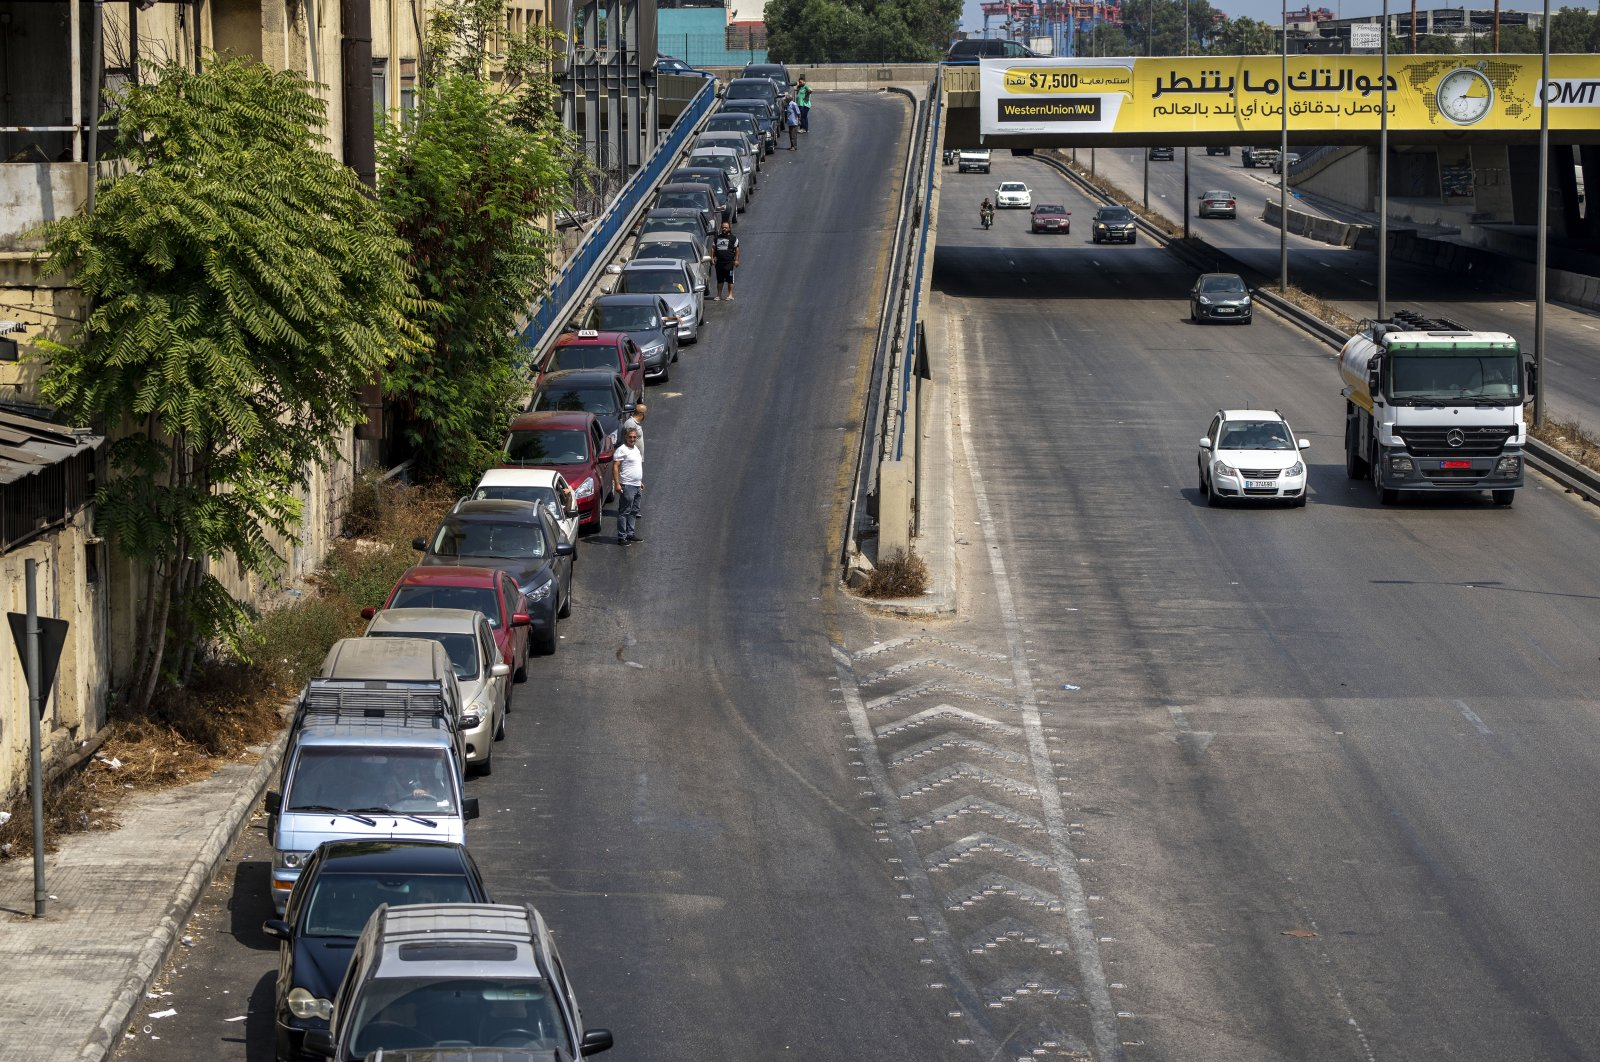 Drivers wait in a long line to get fuel at a gas station in Beirut, Lebanon, Aug. 28, 2021. (AP Photo)